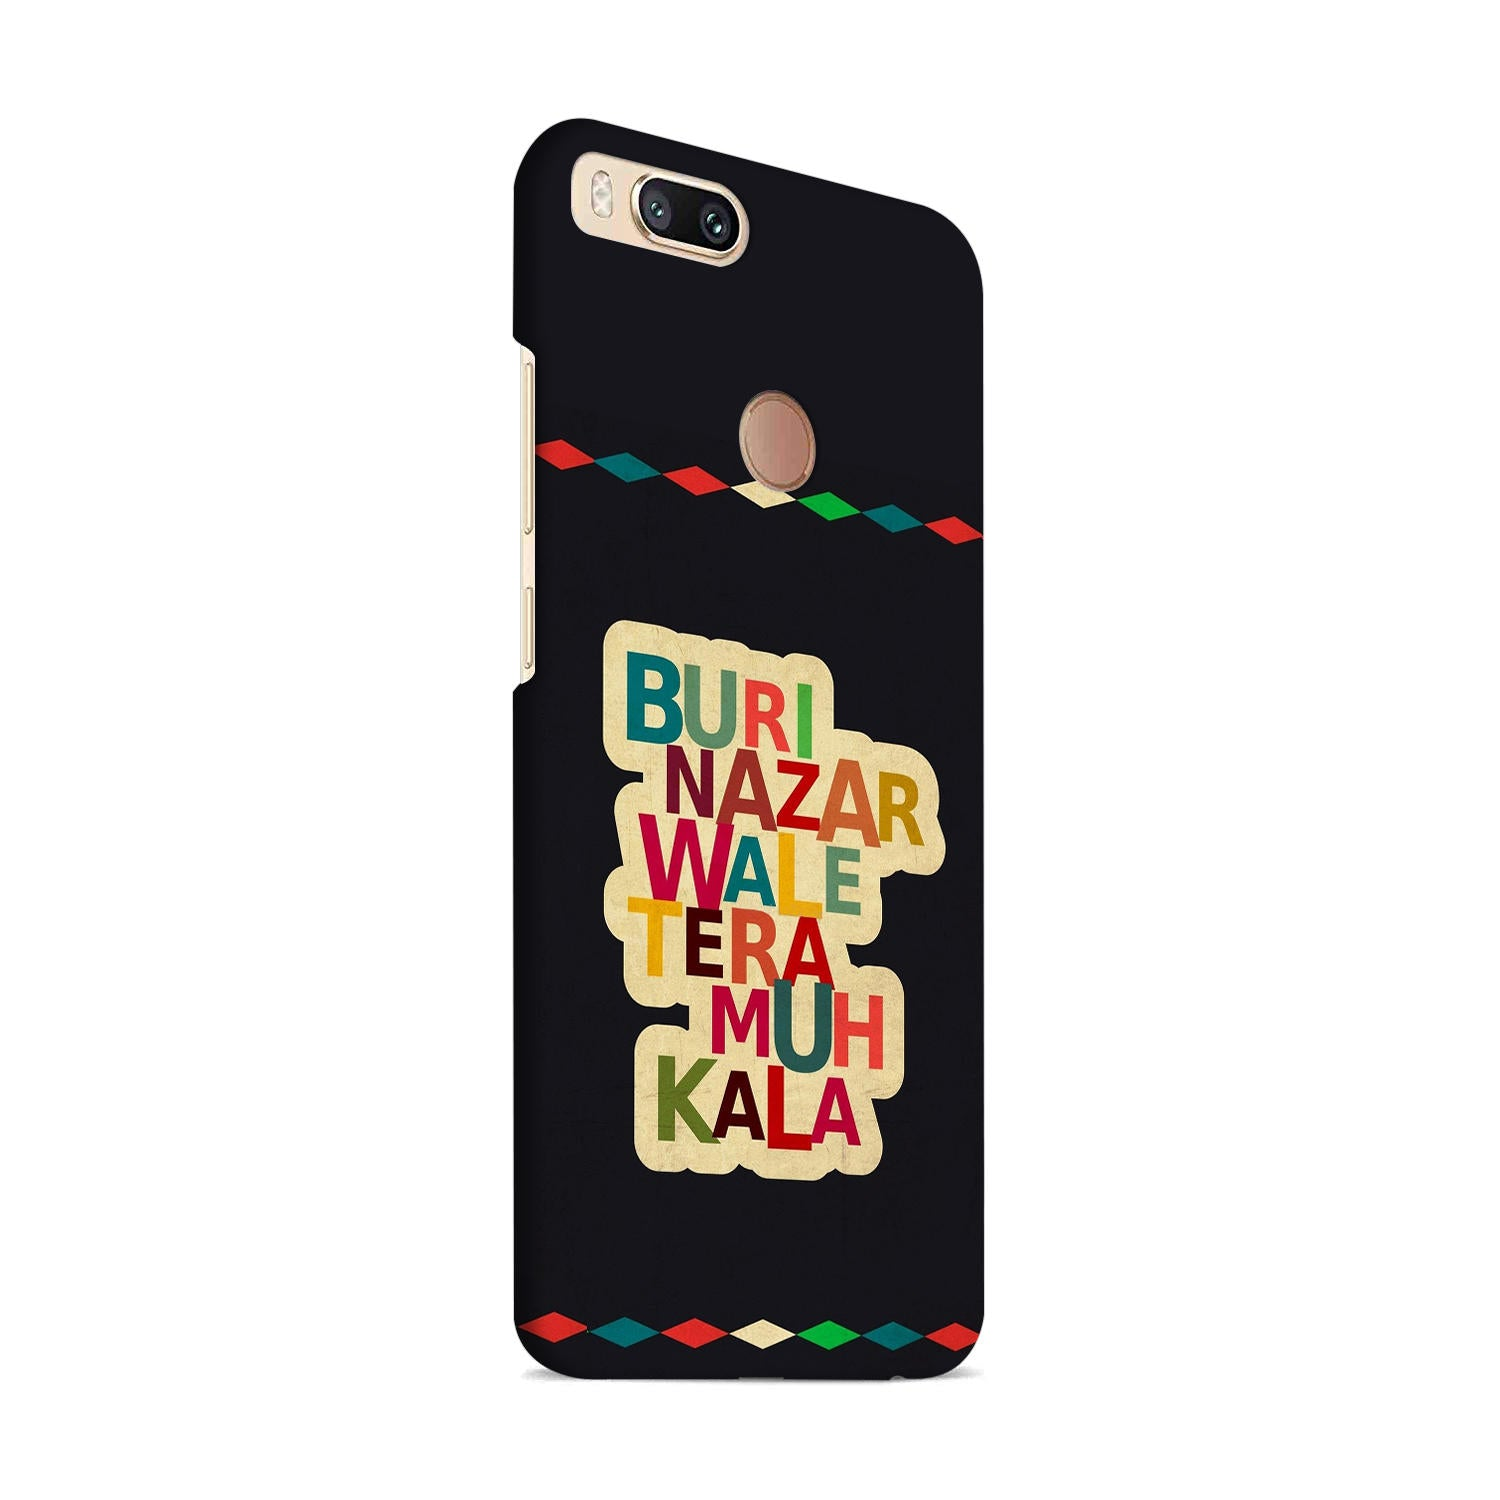 Buri Nazar Wale Tera Muh Kala Indian Typography OnePlus 5T Mobile Cover Case - MADANYU